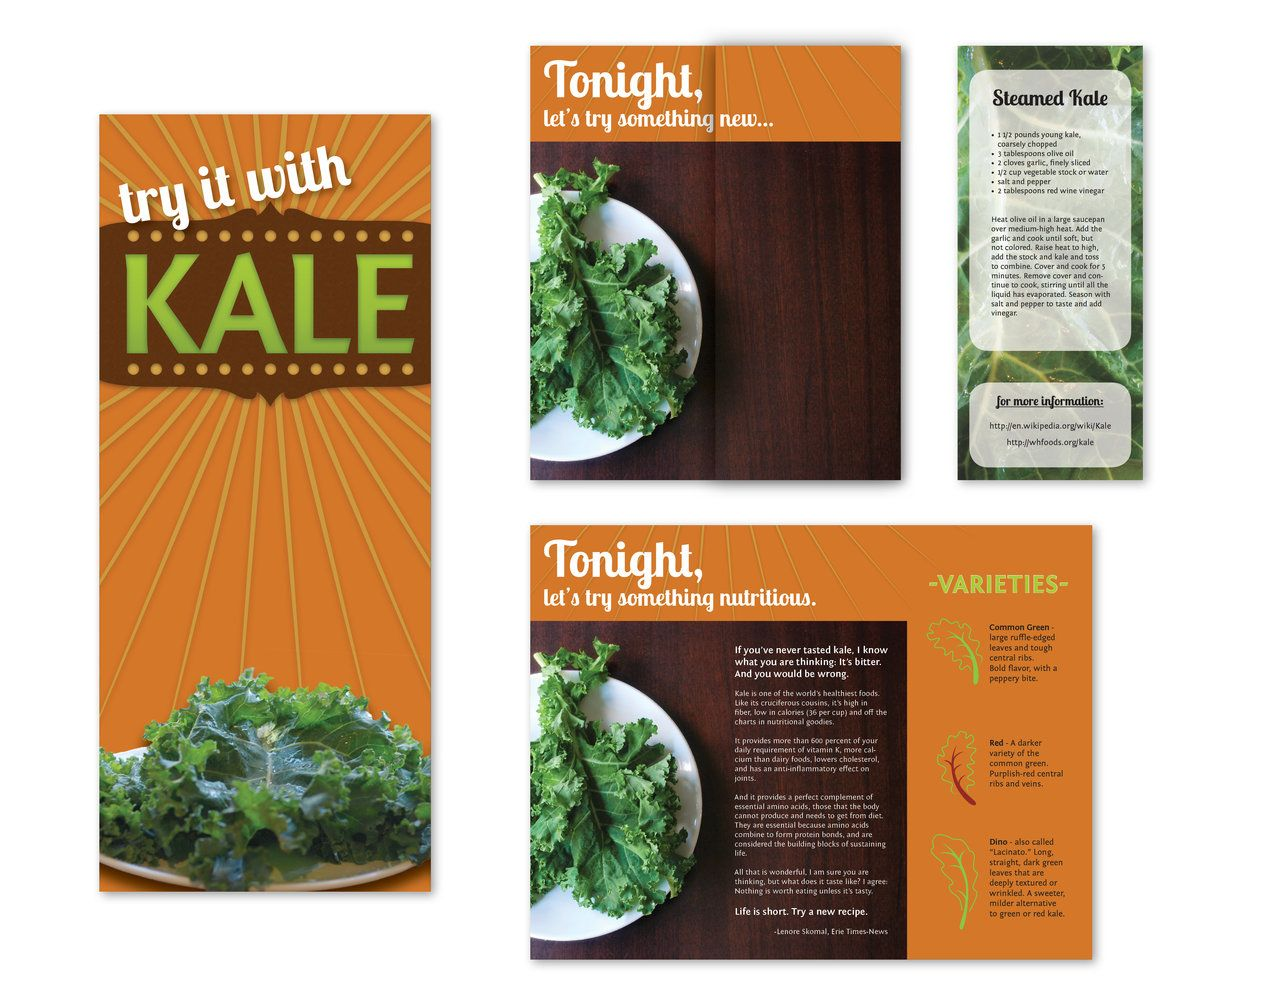 kale_brochure_by_llahsram-d5ds9vx.jpg (1280×1006)